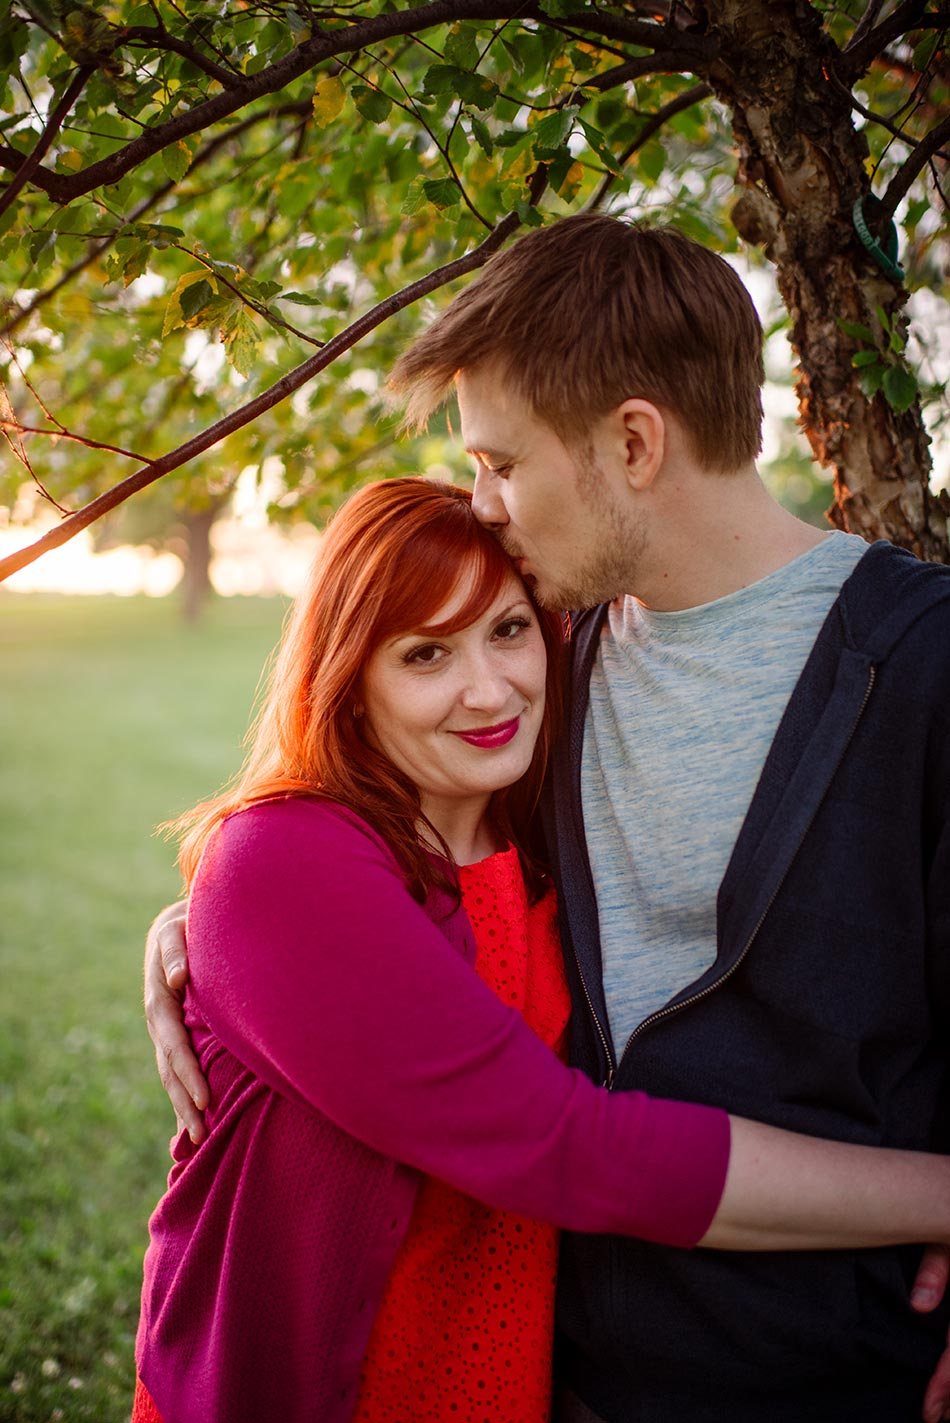 minneapolis Ferris Wheel Engagement photos at betty dangers country club